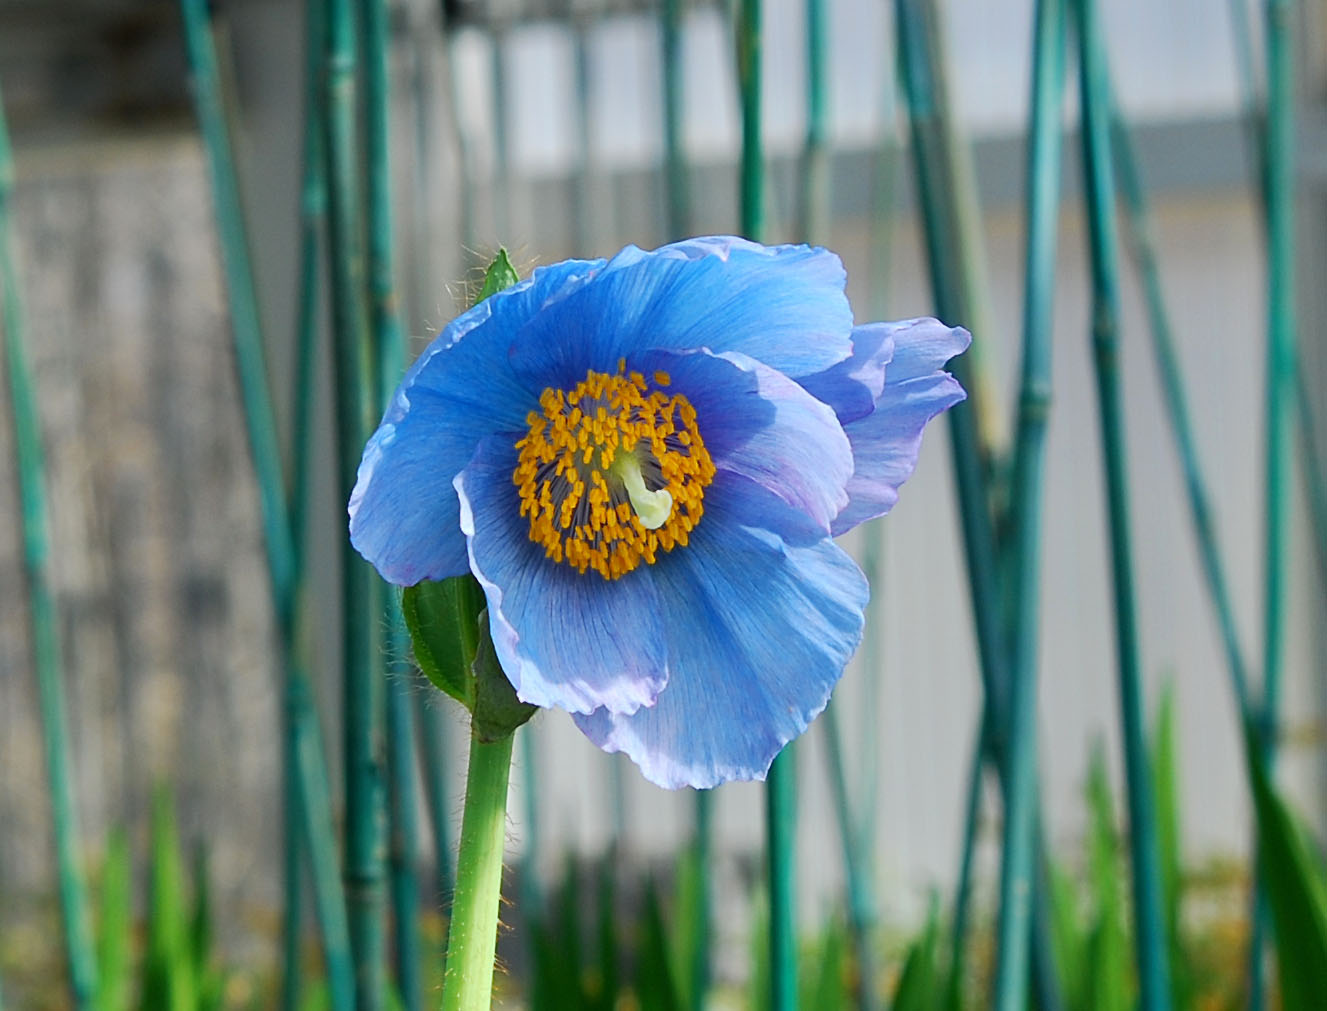 A blue-poppy in bloom in the production greenhouse